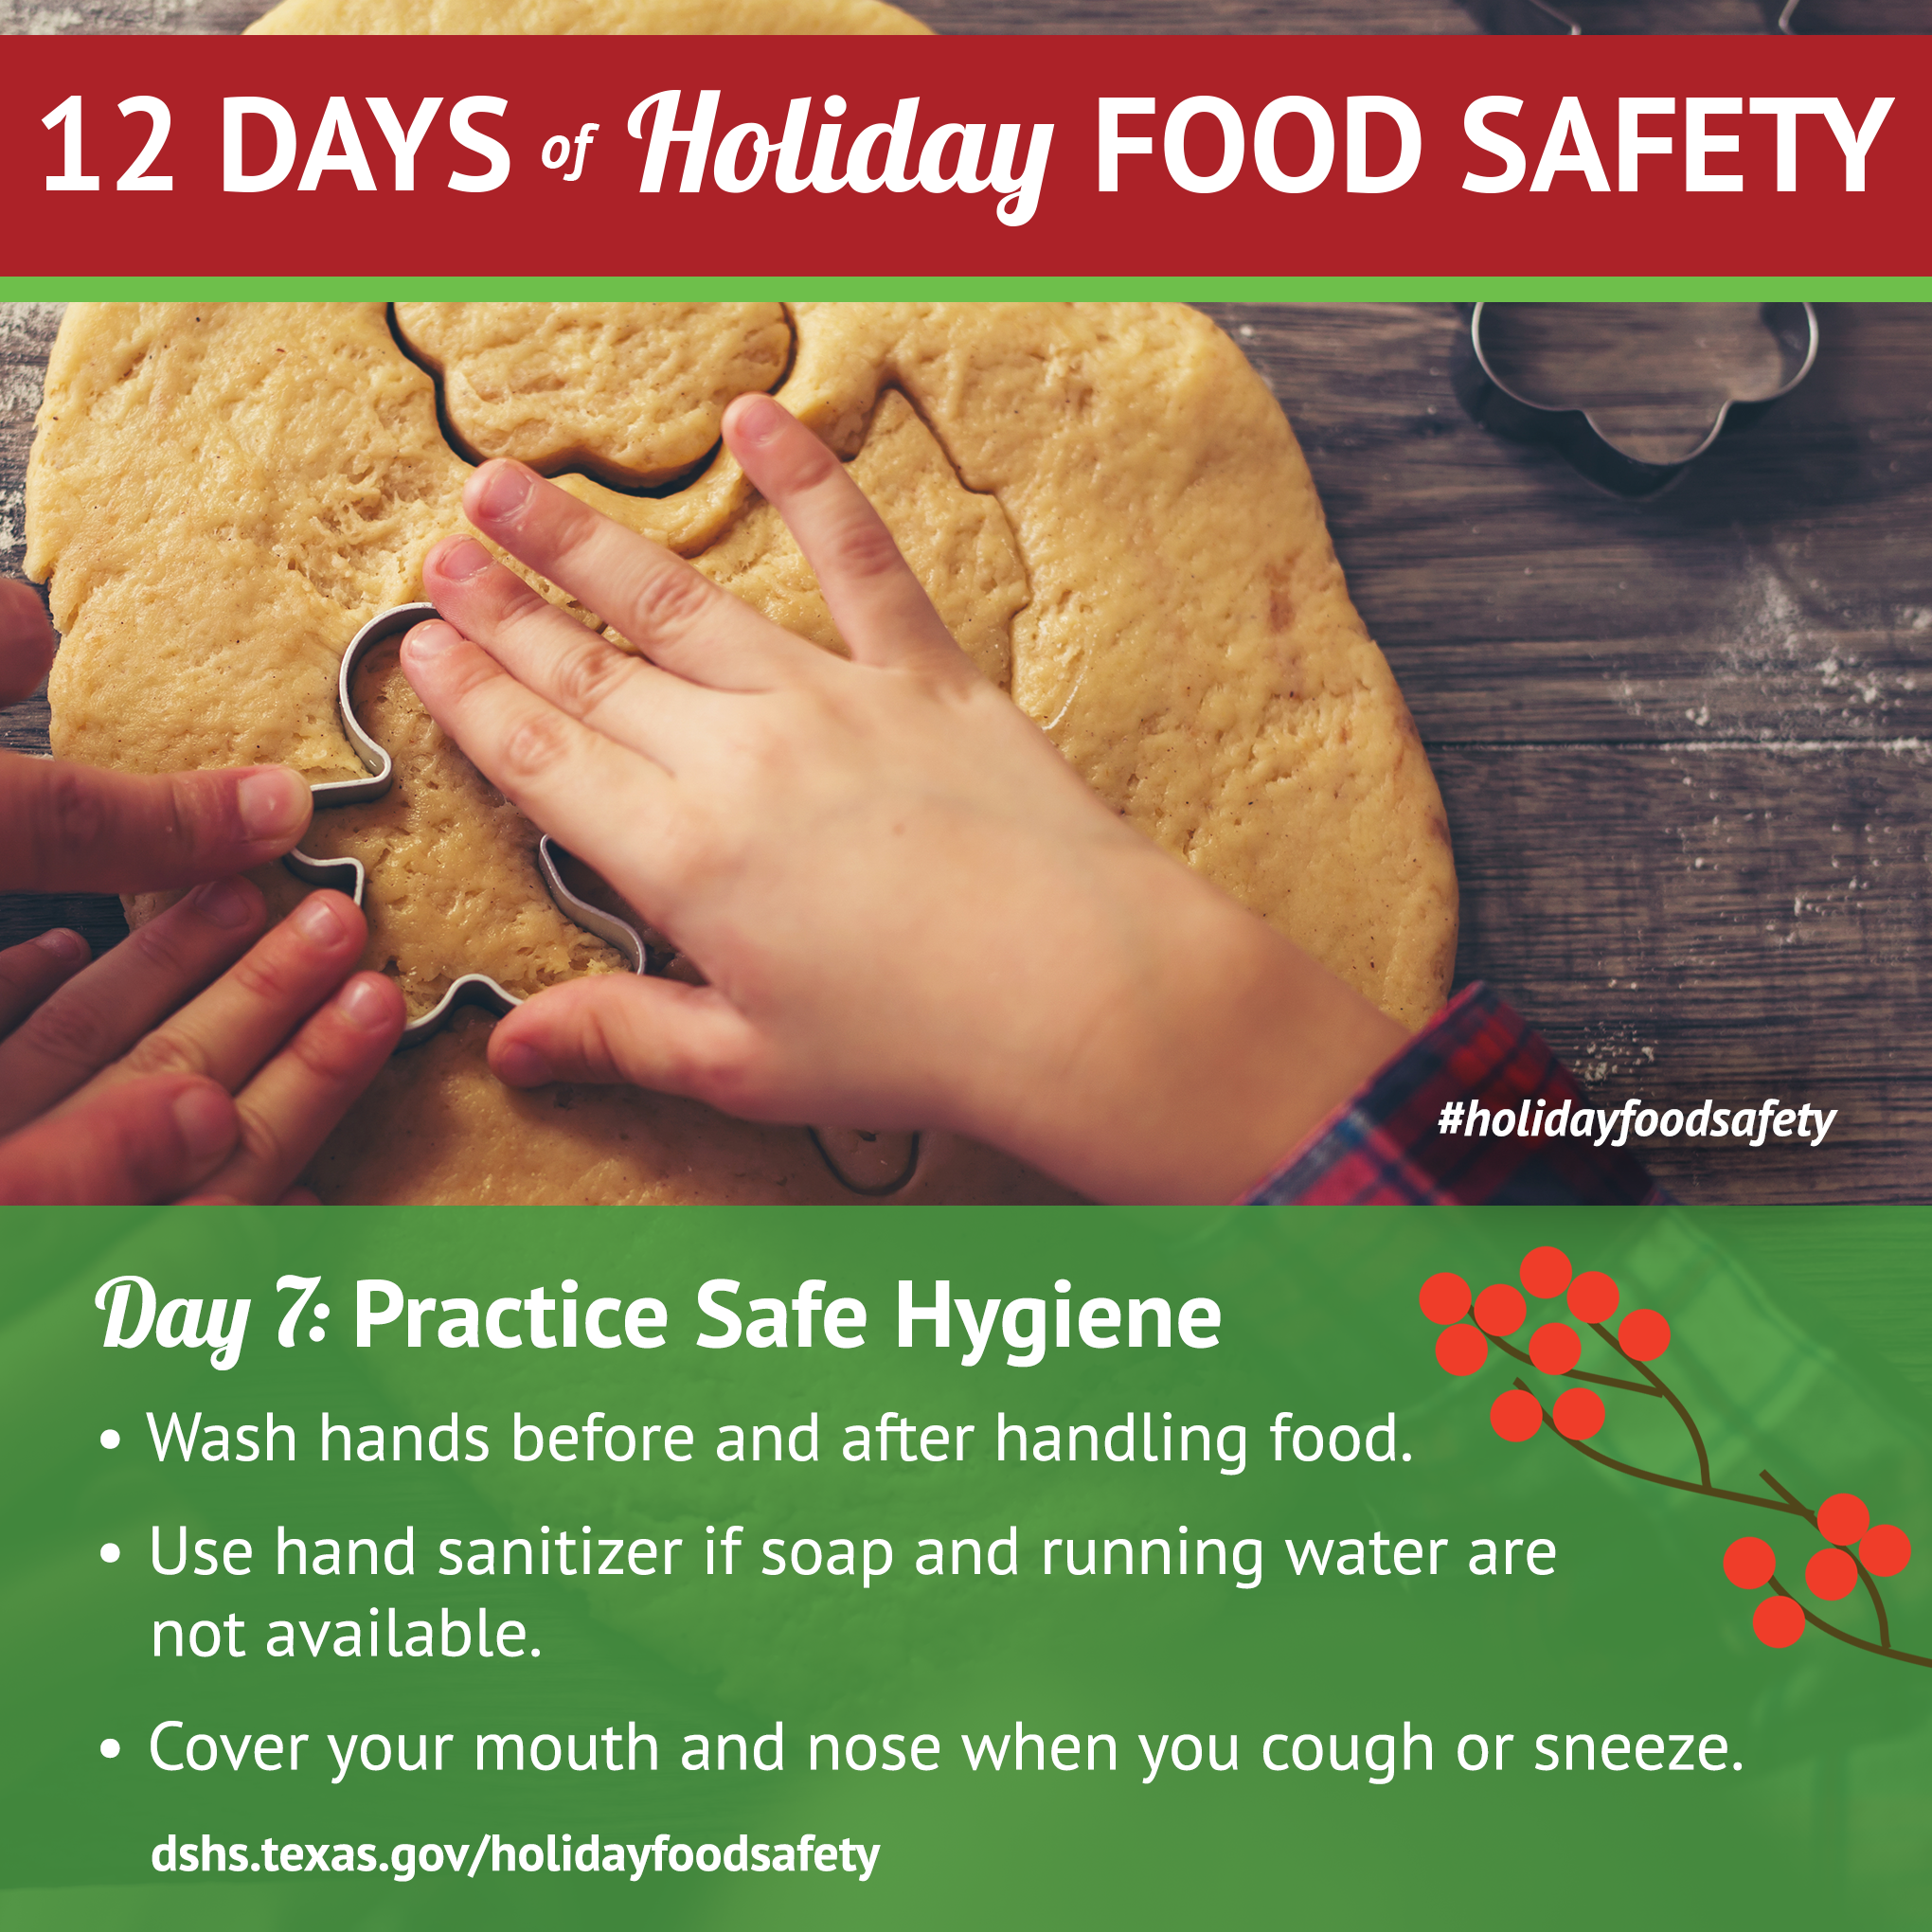 Day7 holiday food safetyg 12 days of holiday food safety day 7 practice safe hygiene 1betcityfo Choice Image